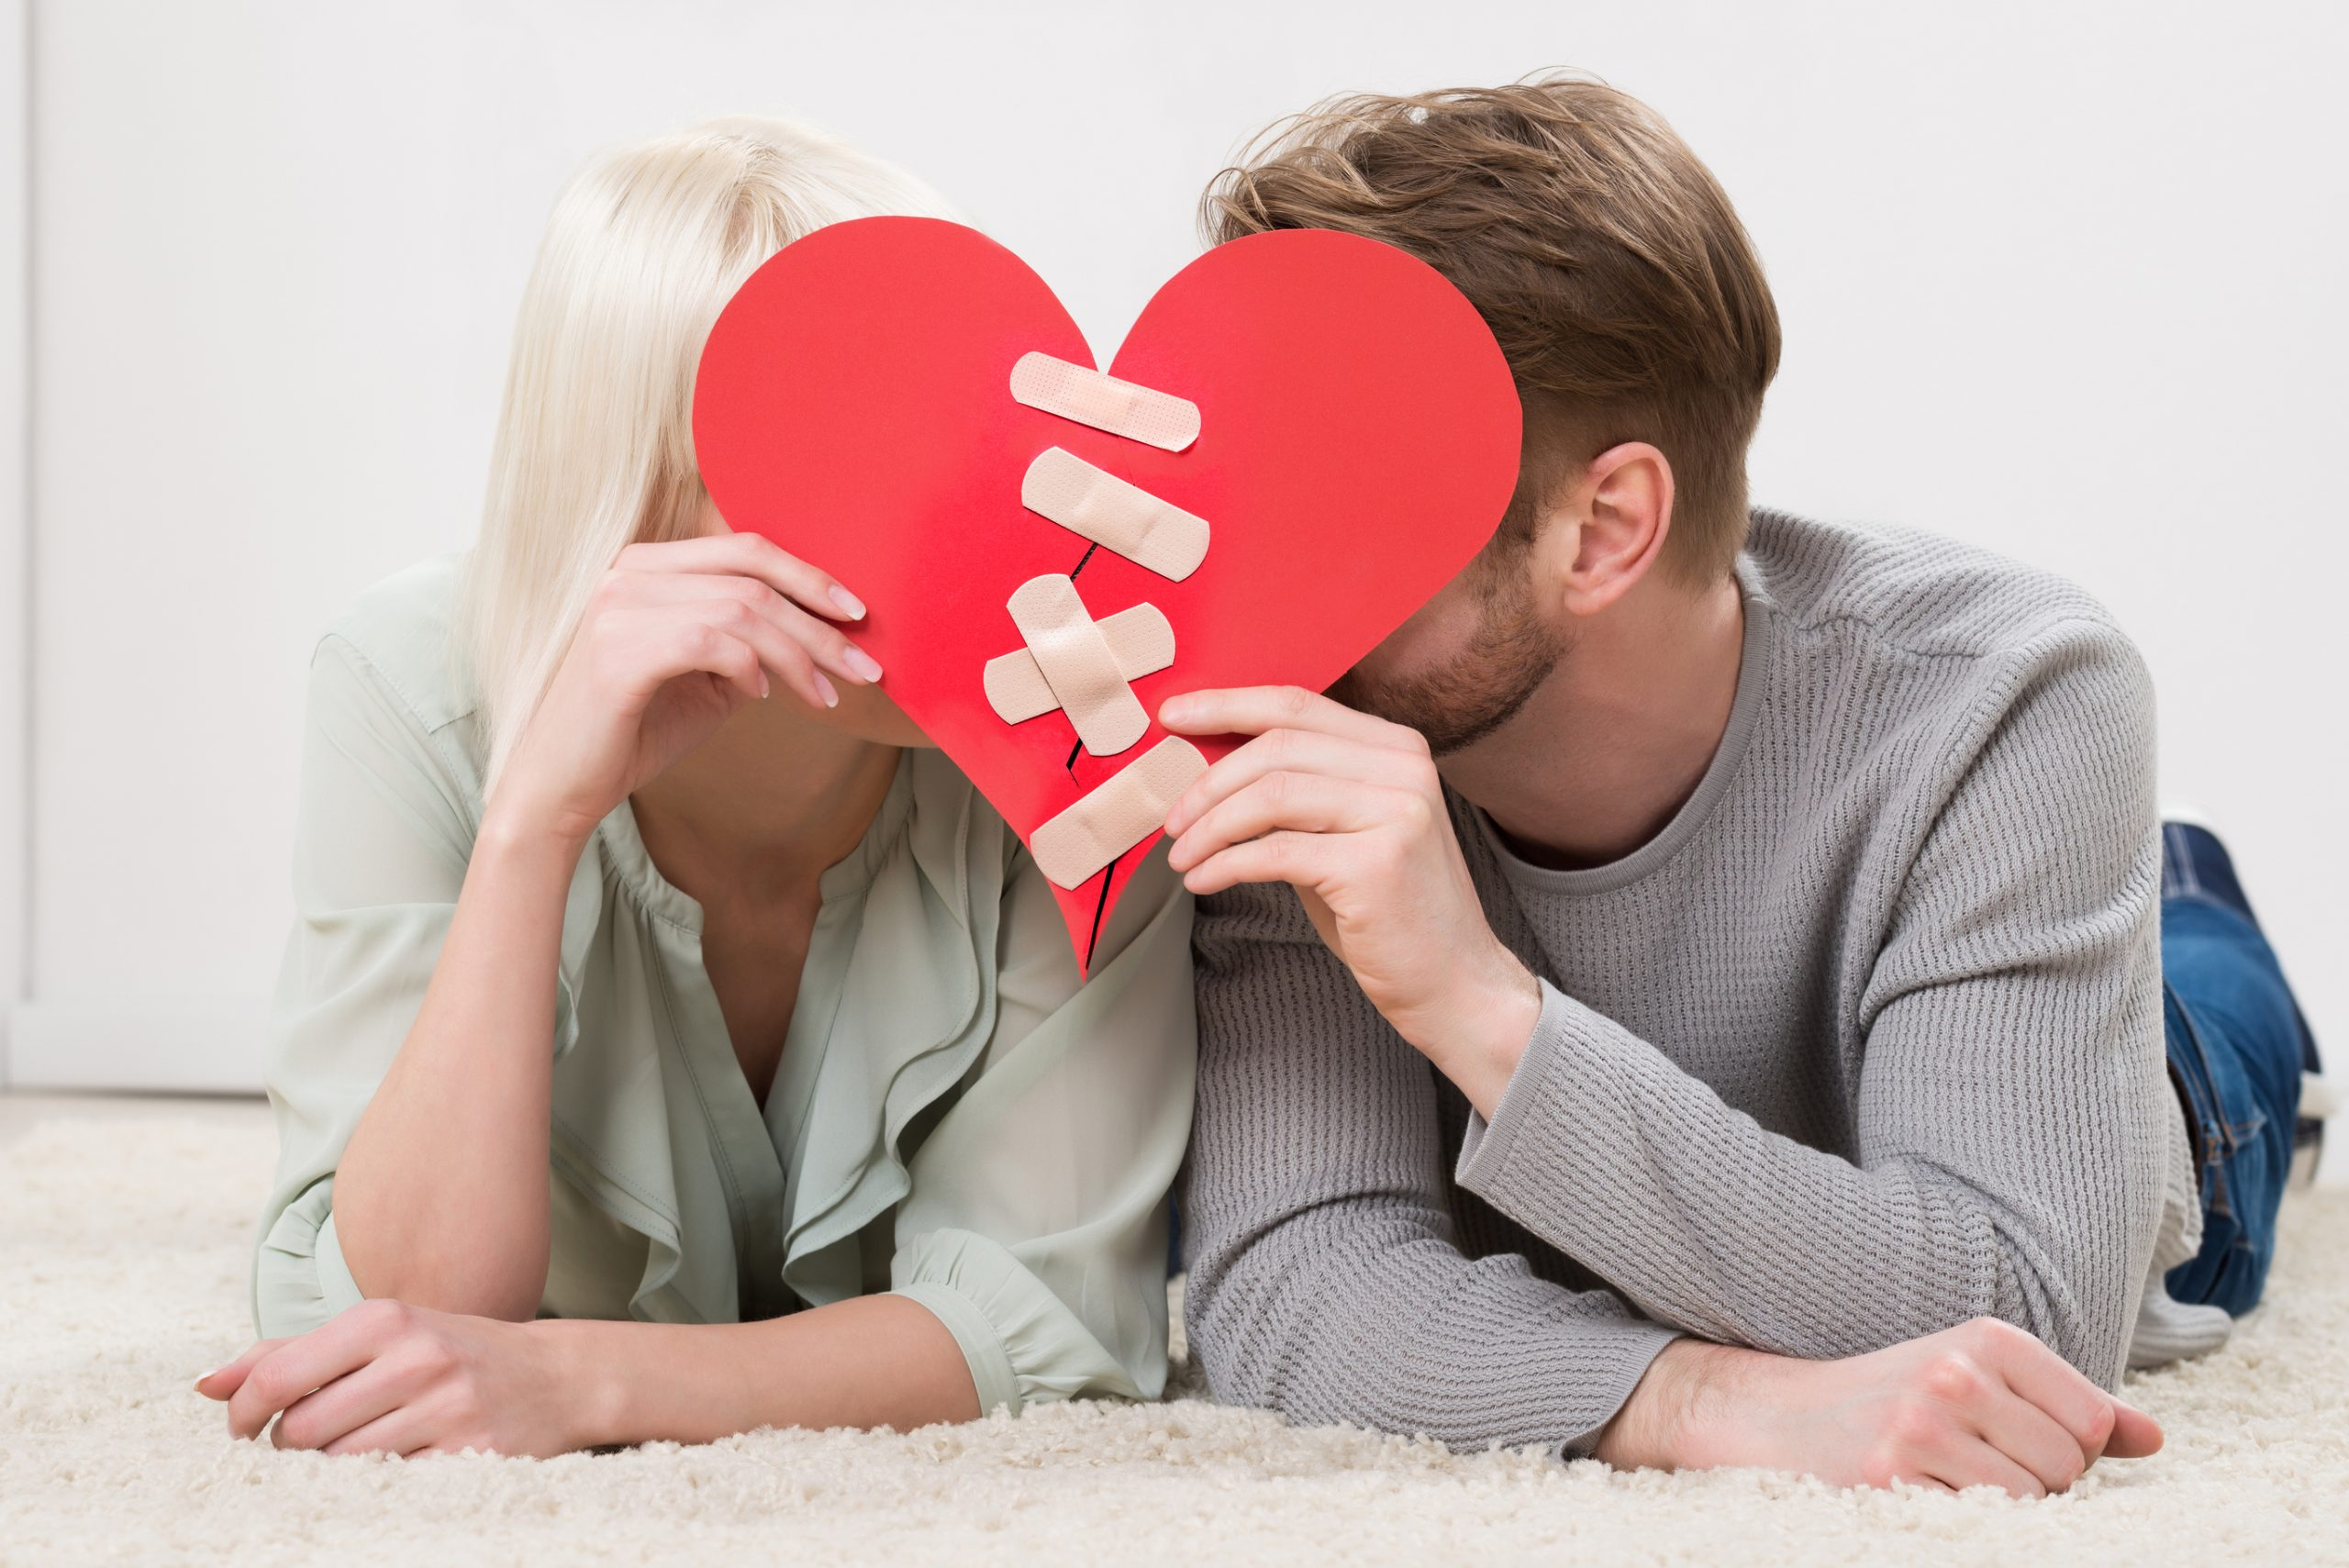 How To Fix A Relationship You Ruined